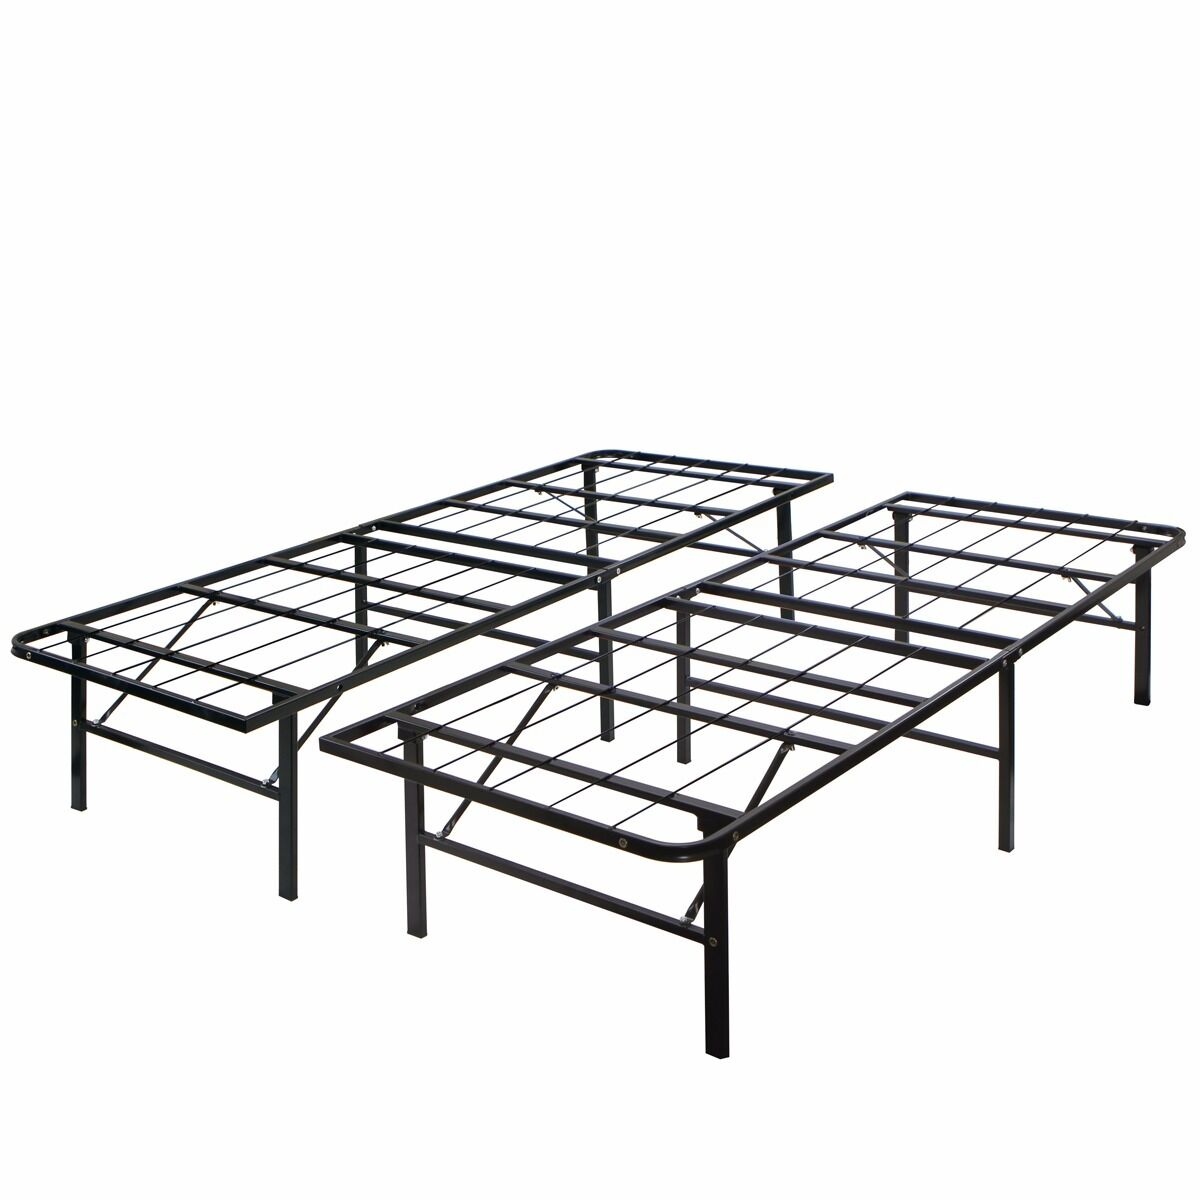 Modern king size bi fold folding platform metal bed frame for King size bed frame and mattress